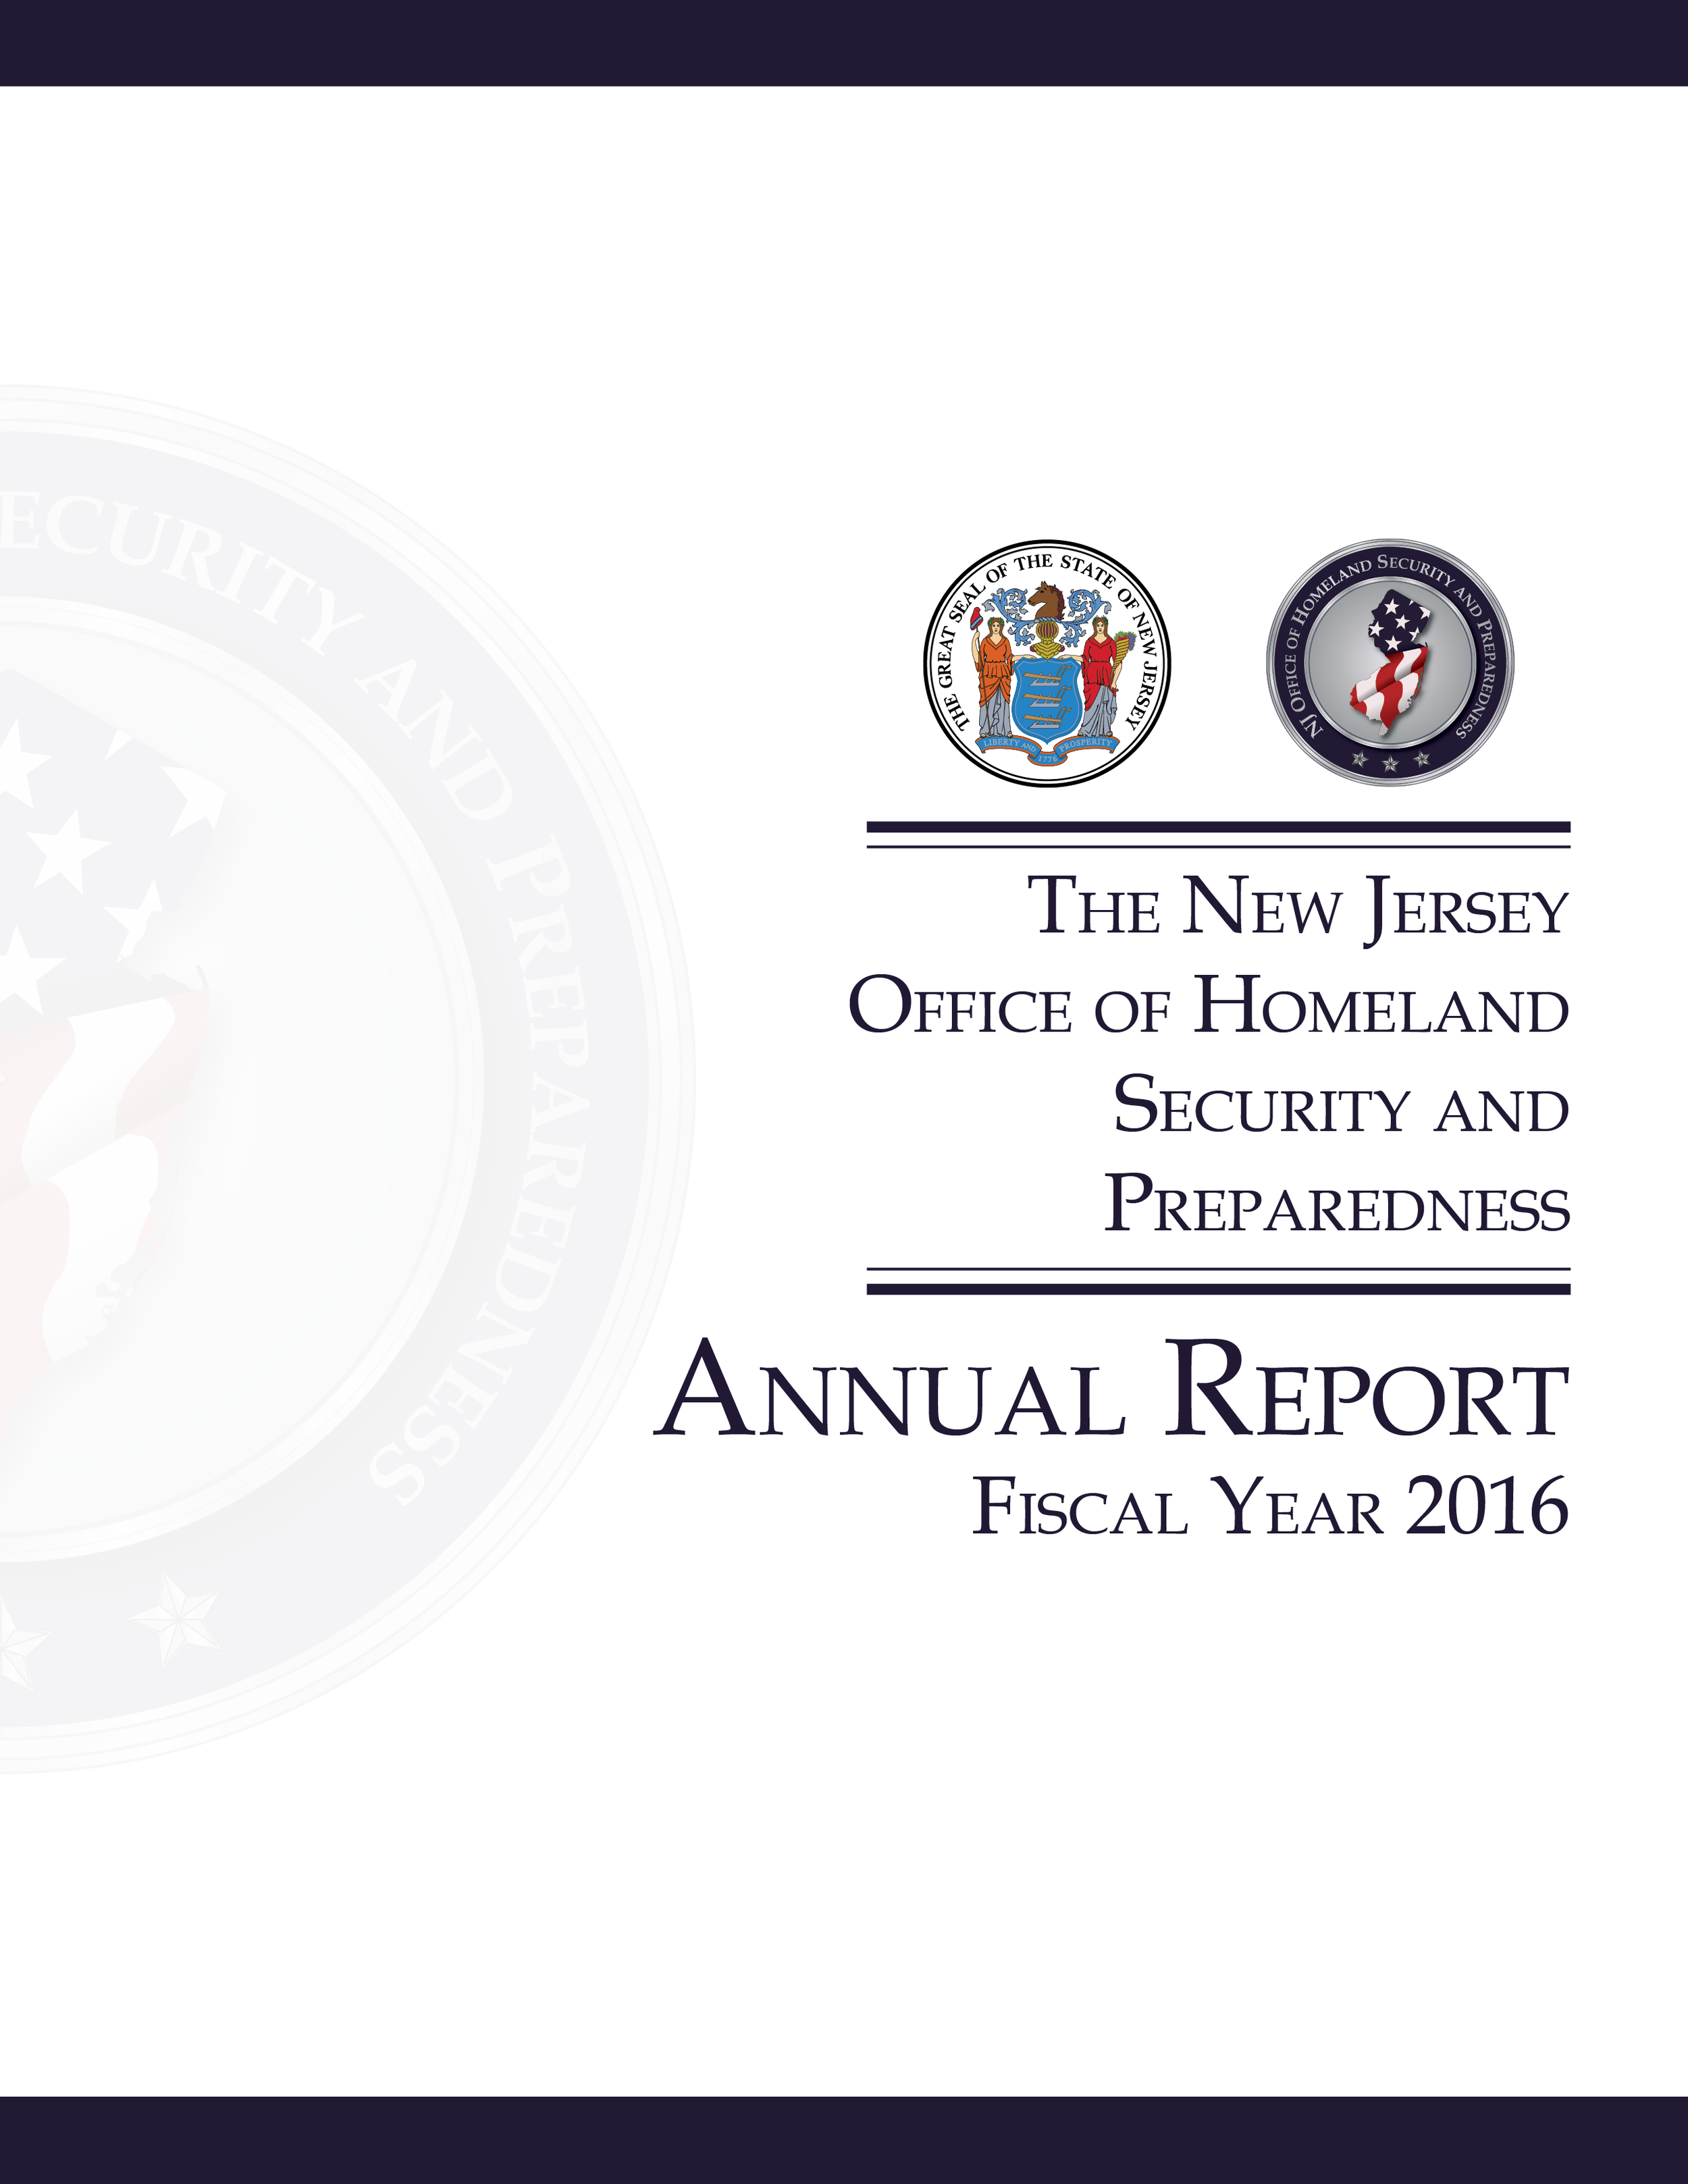 NJOHSP Annual Report Fiscal Year 2016 Coverpage.png